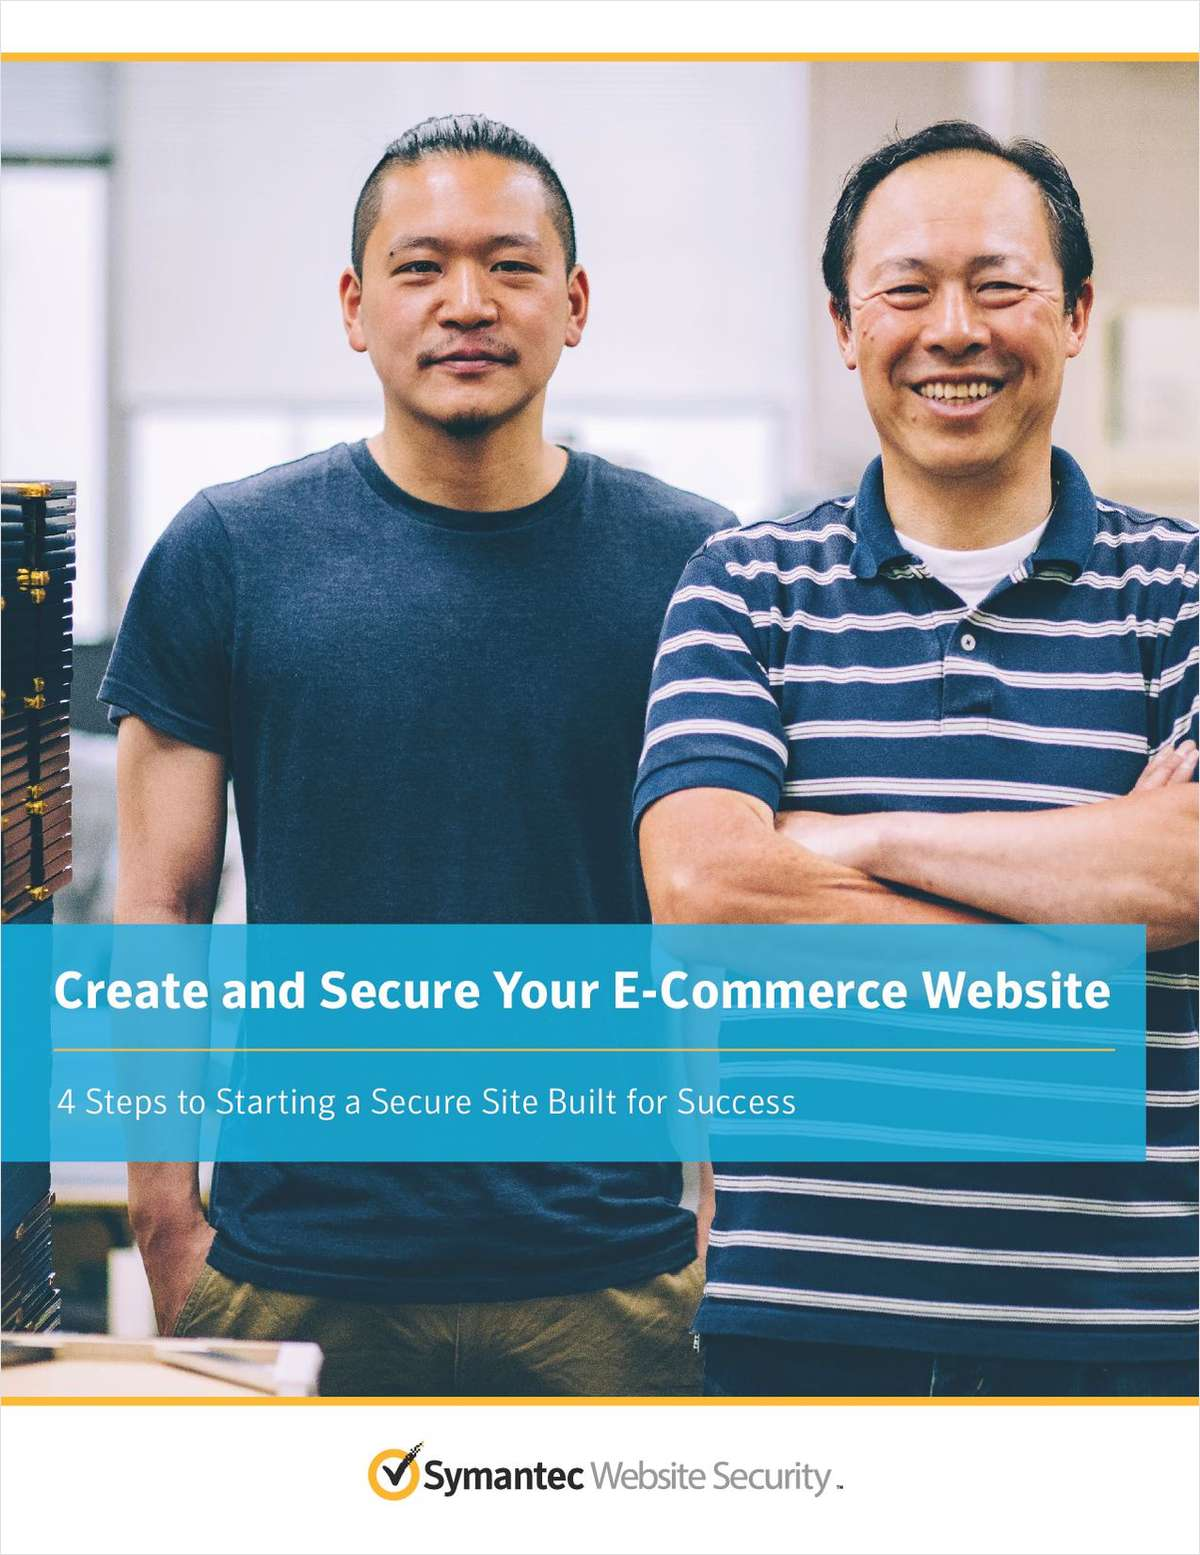 Create and Secure Your E-Commerce Website